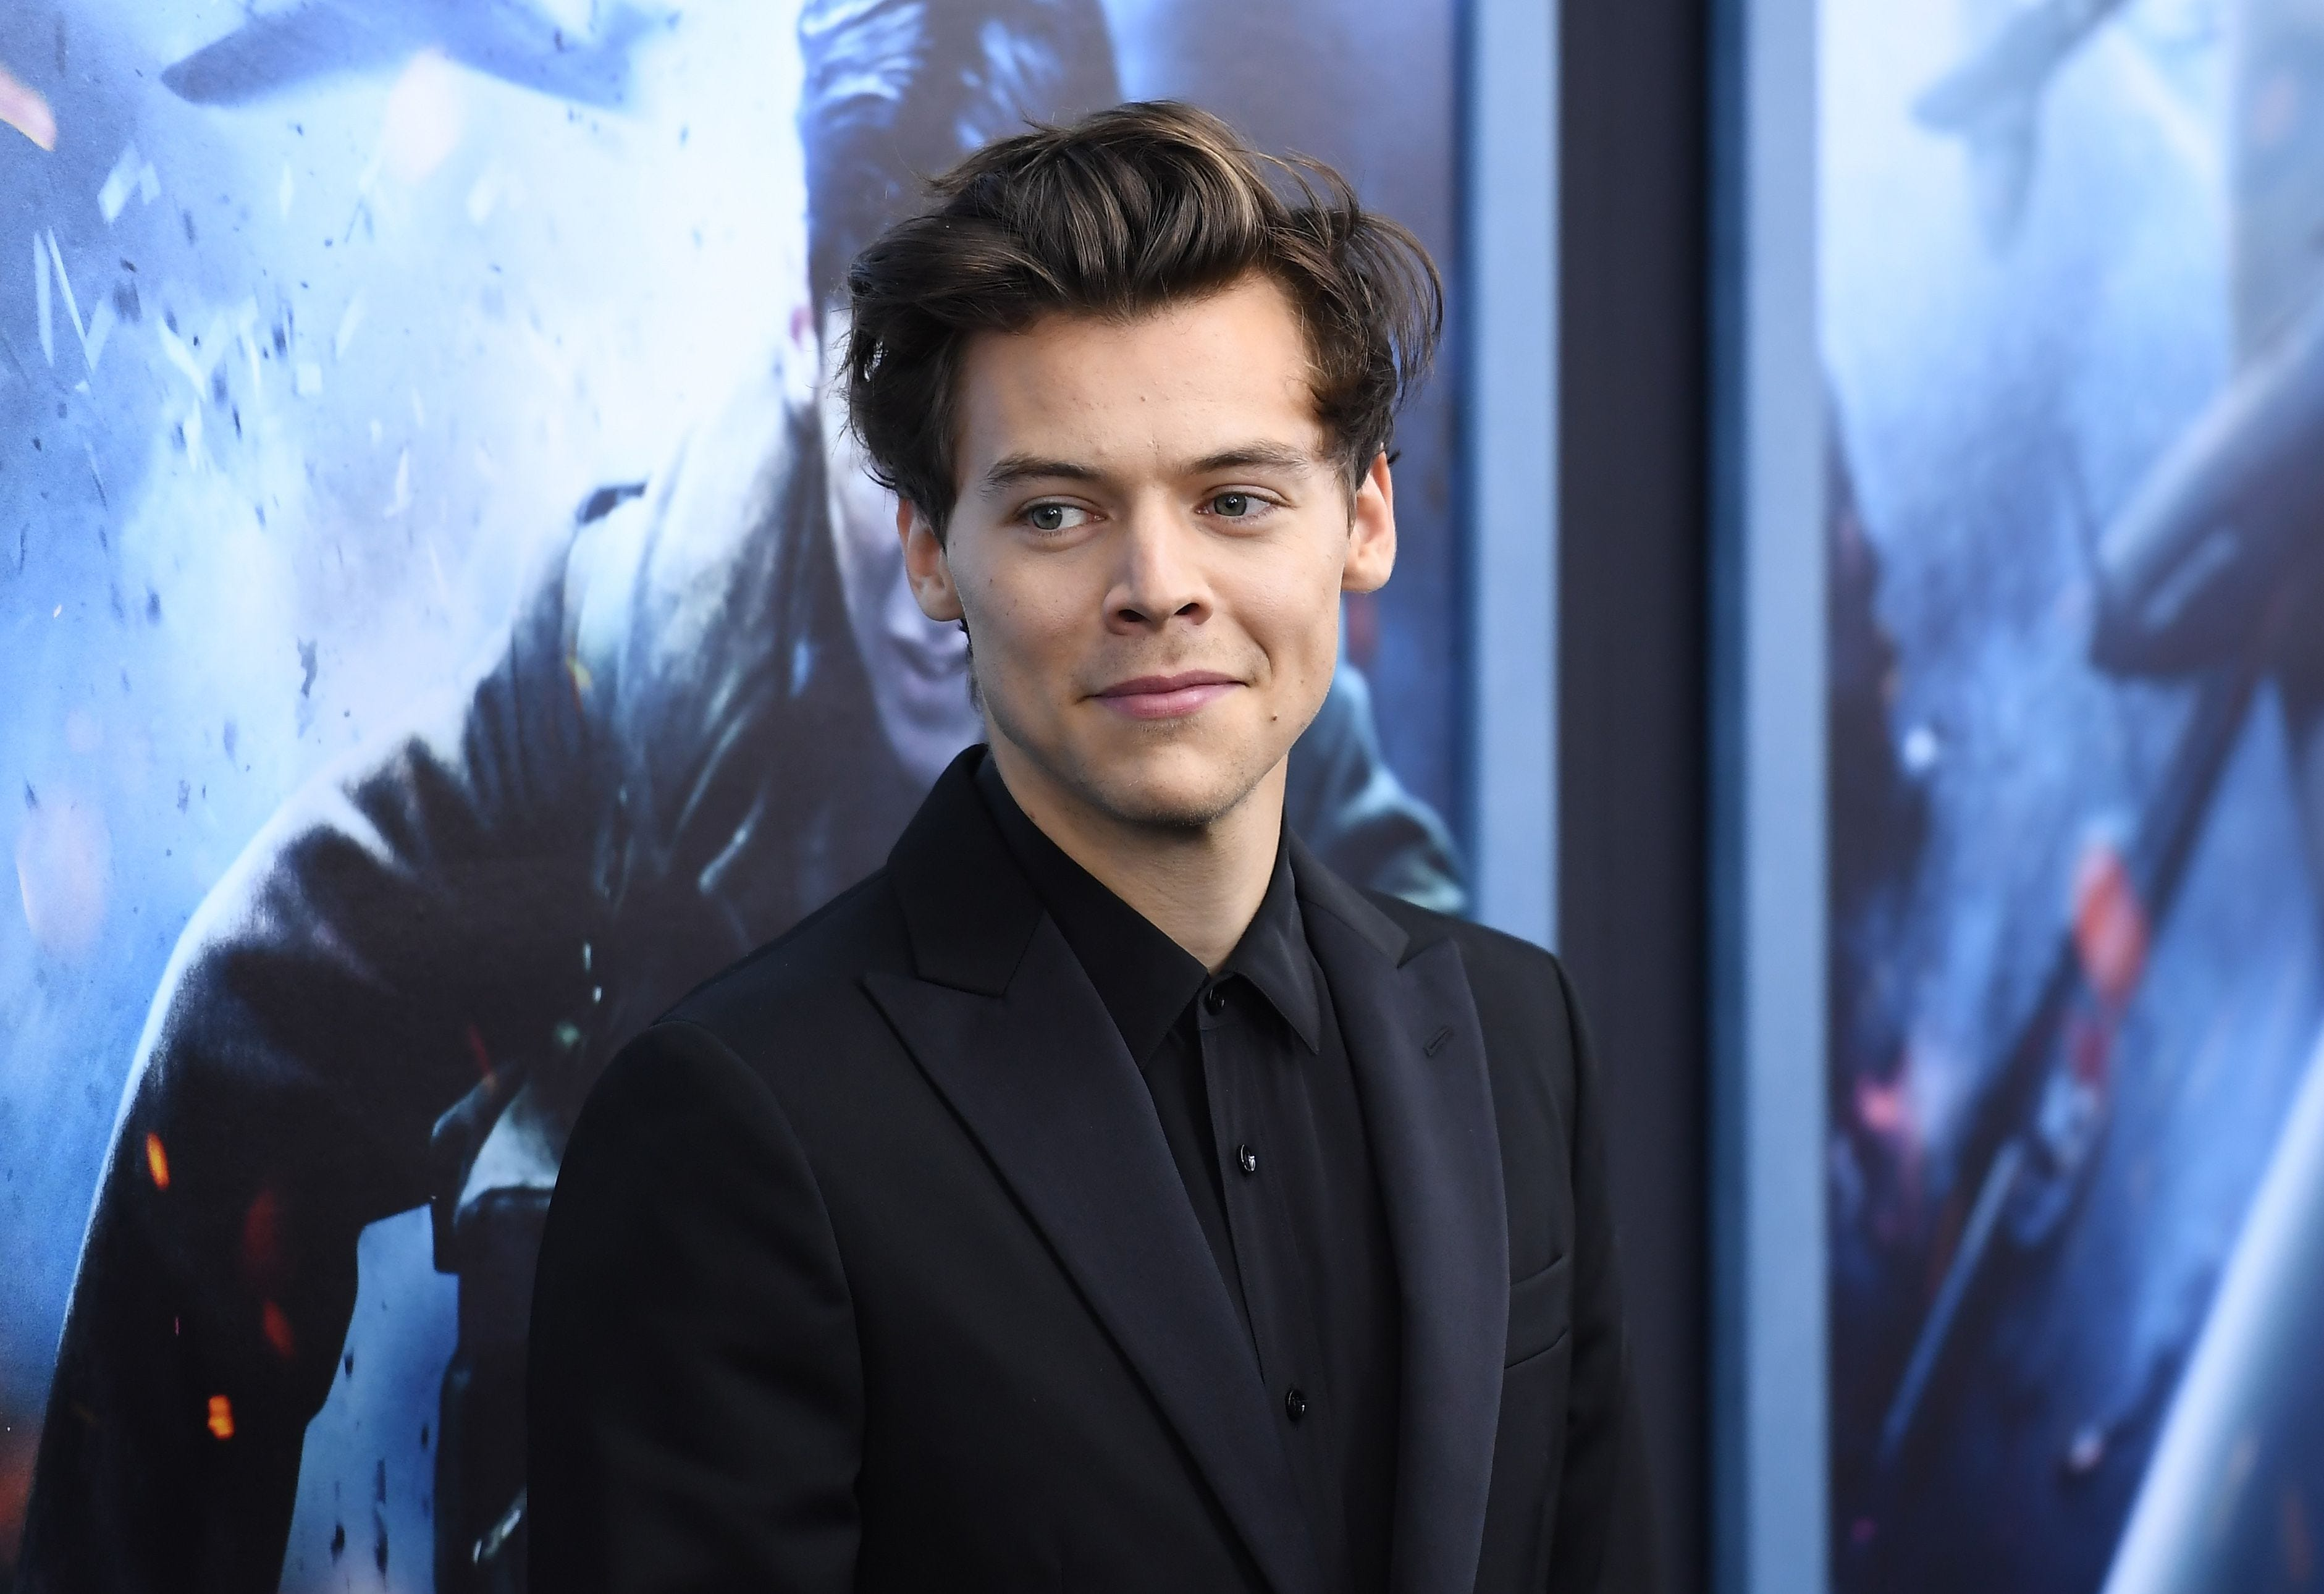 Everything critics are saying about Harry Styles in \u0027Dunkirk\u0027